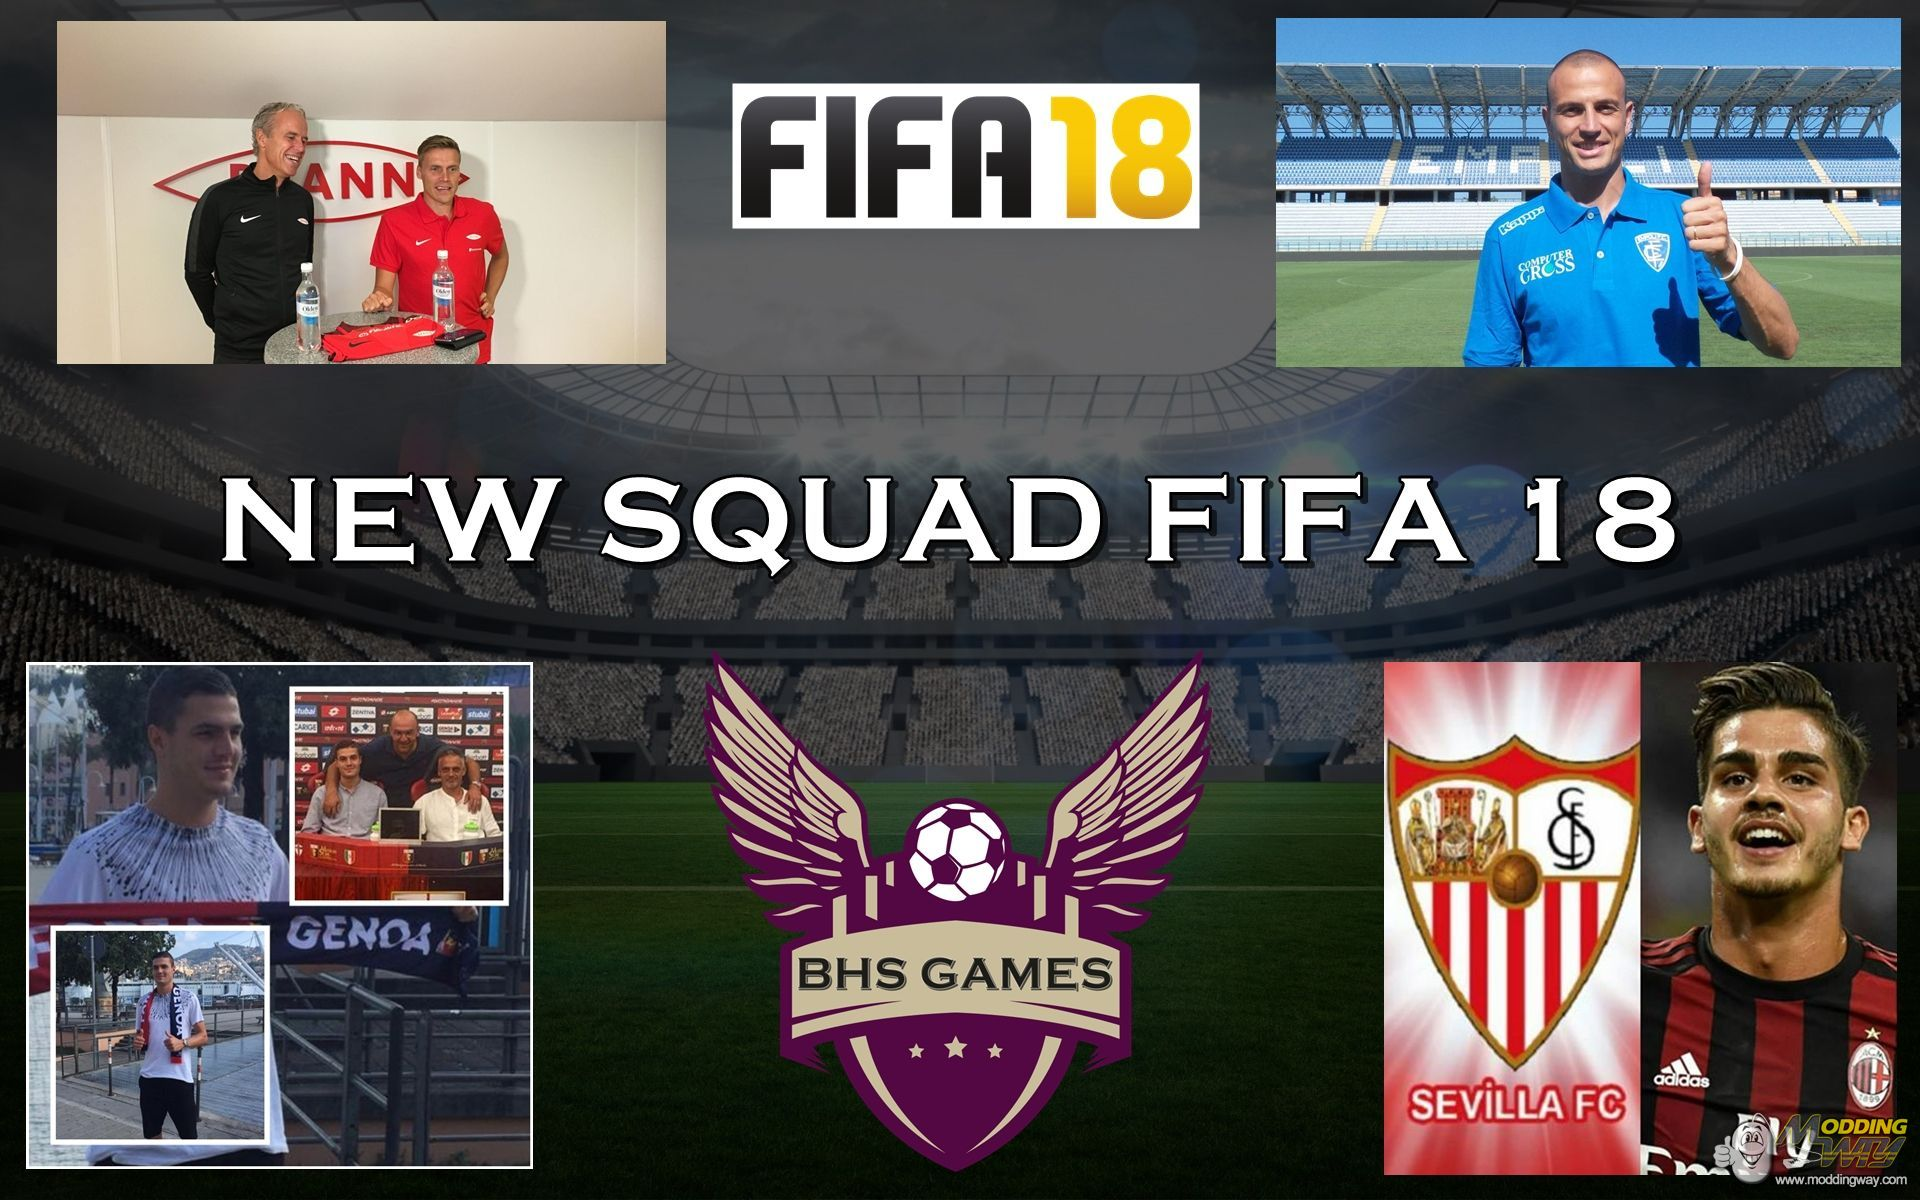 fifa 14 squad update 2018/19 file